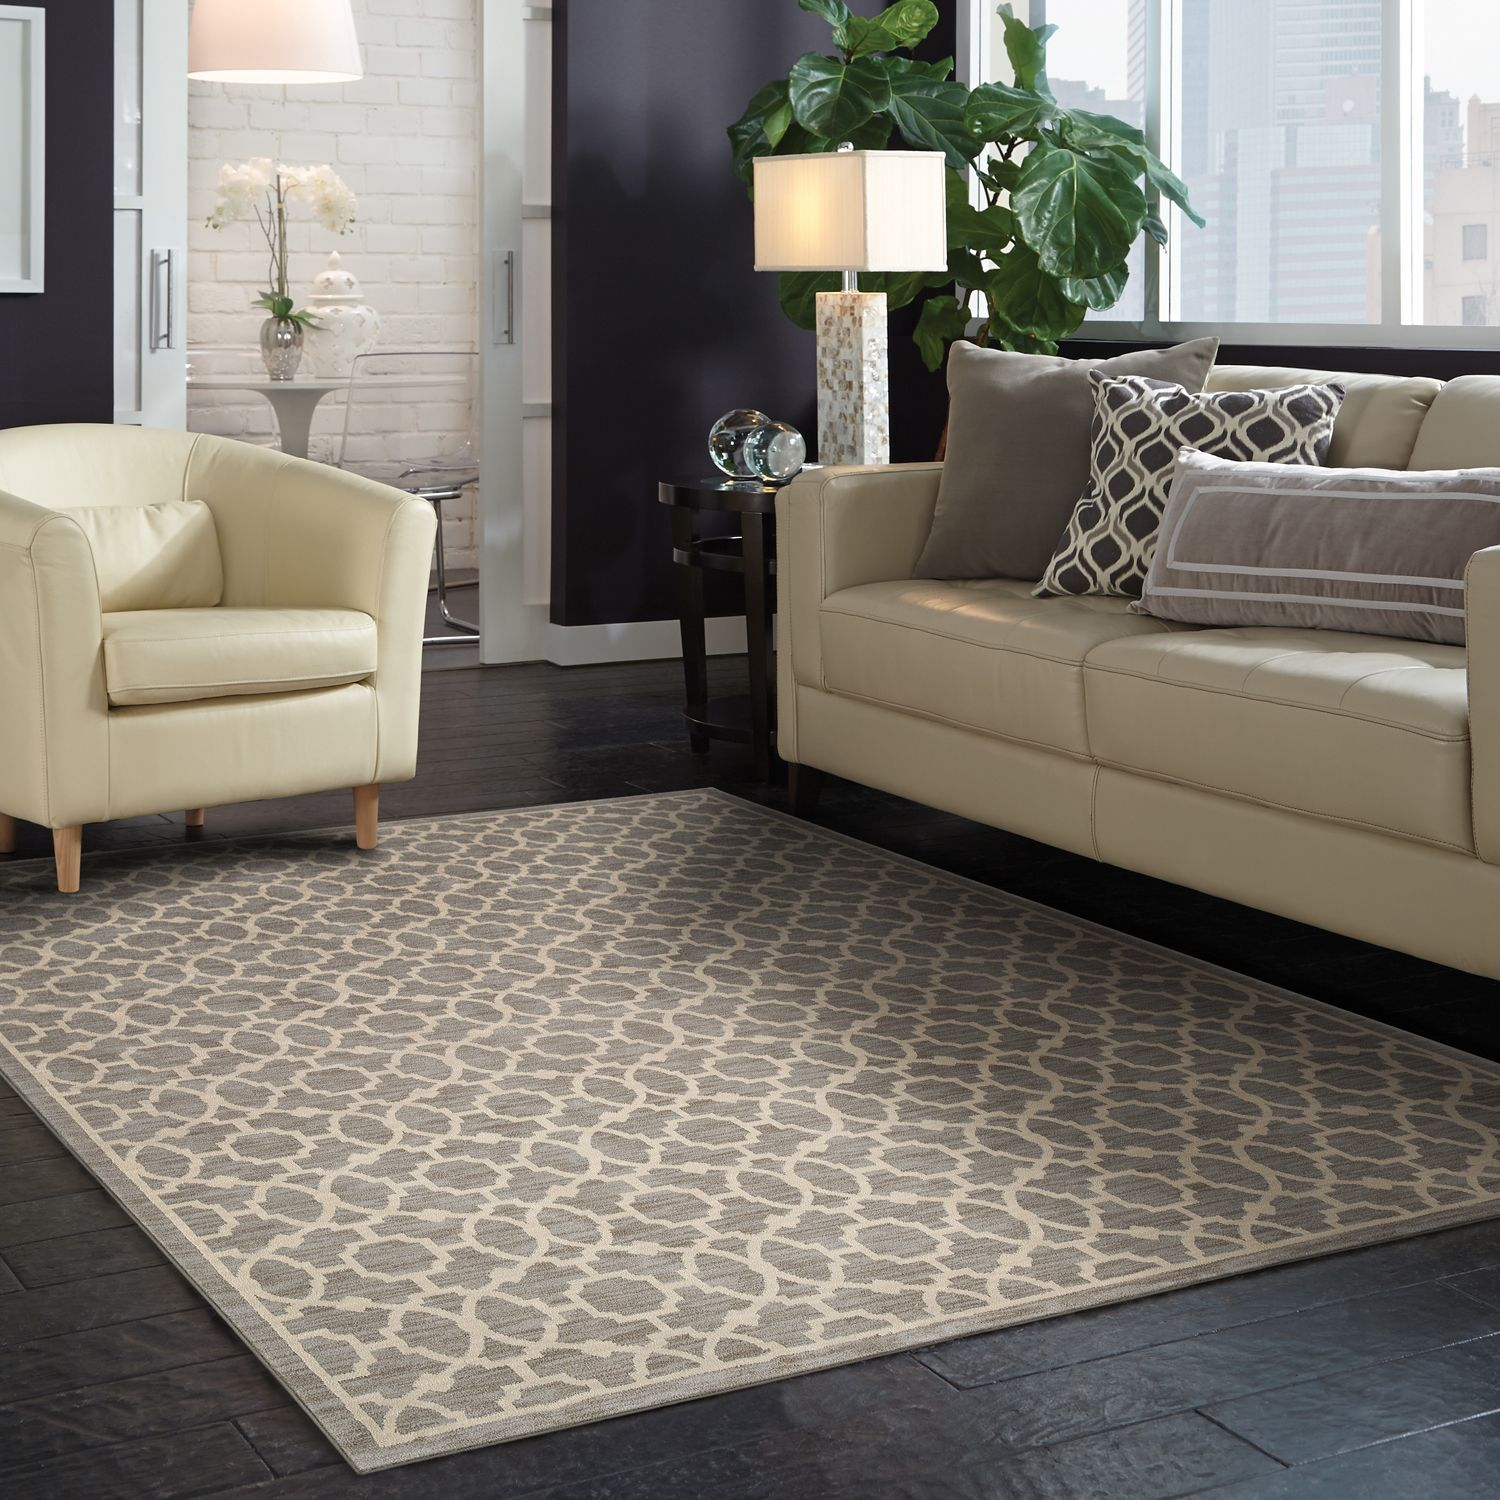 Sam Club Area Rugs Area Rug Ideas